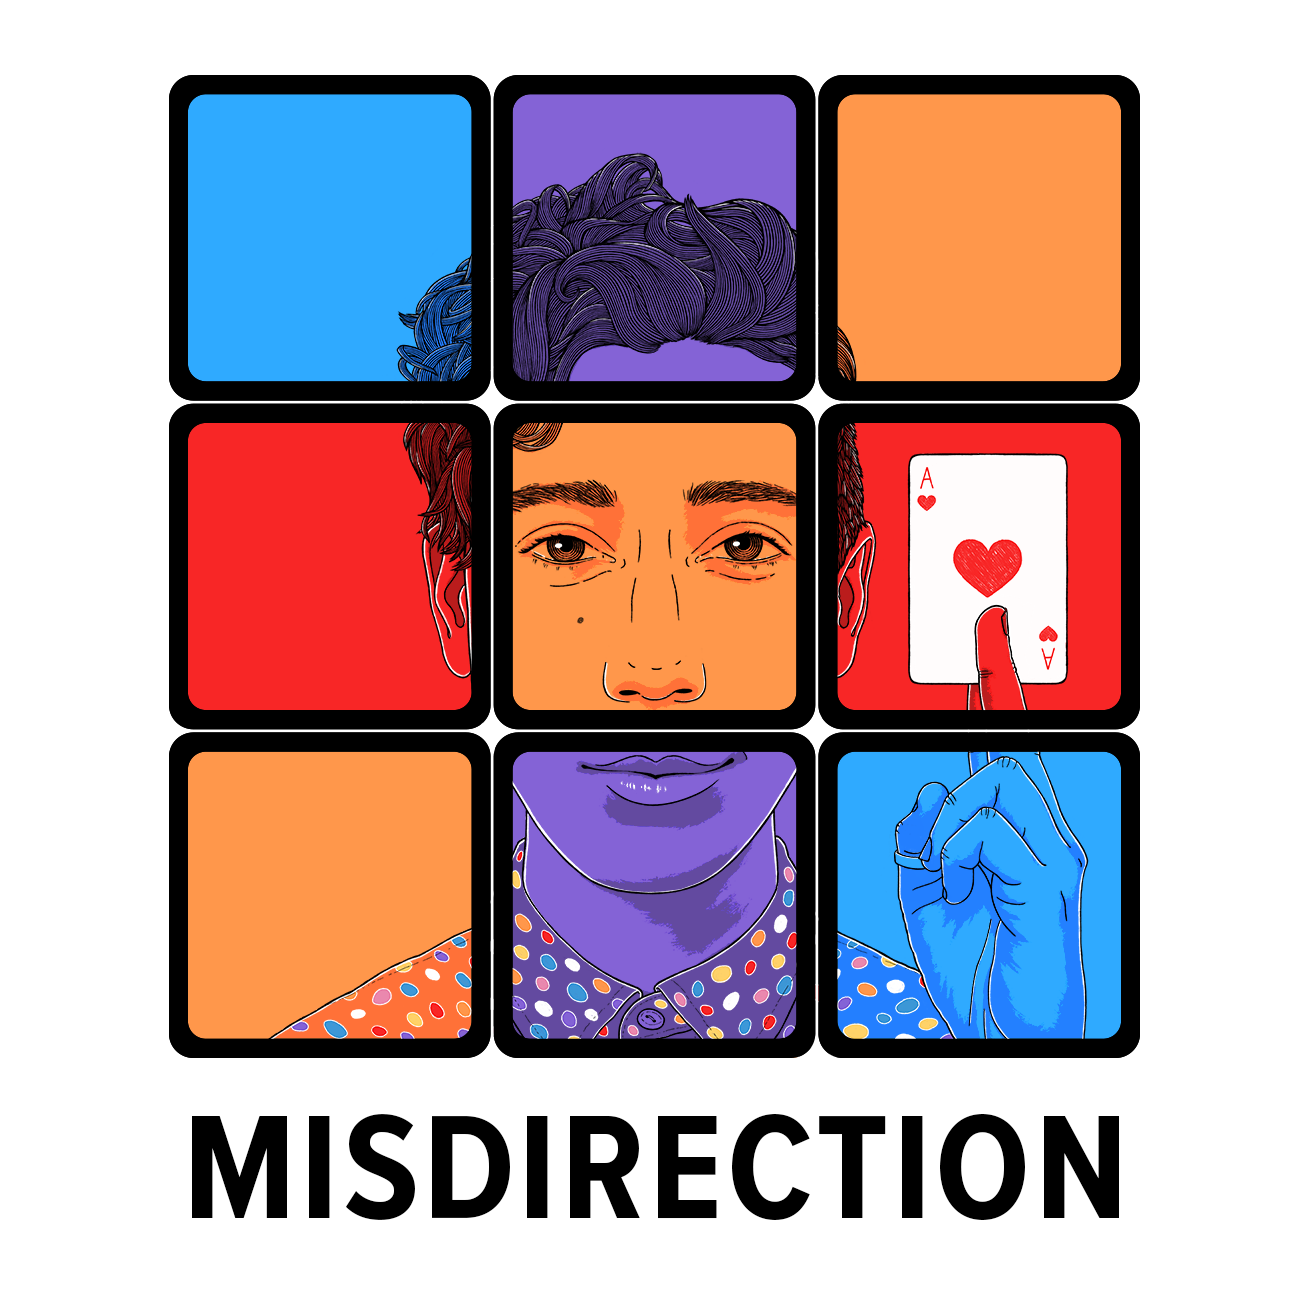 MISDIRECTION-Web-Square.png